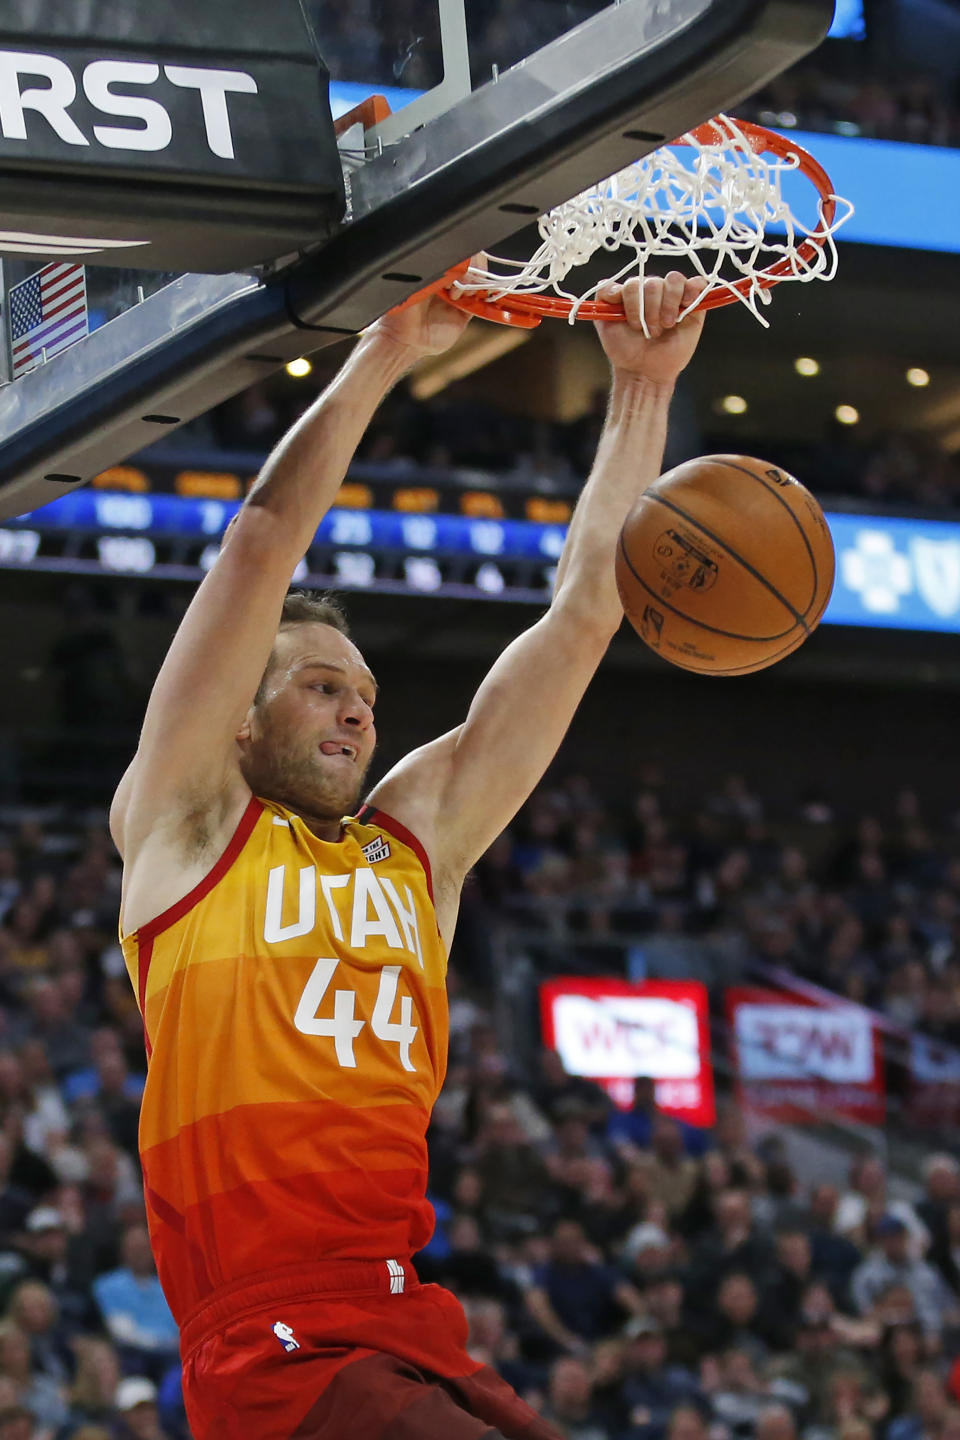 Utah Jazz forward Bojan Bogdanovic (44) dunks against the Indiana Pacers in the second half of an NBA basketball game Monday, Jan. 20, 2020, in Salt Lake City. (AP Photo/Rick Bowmer)